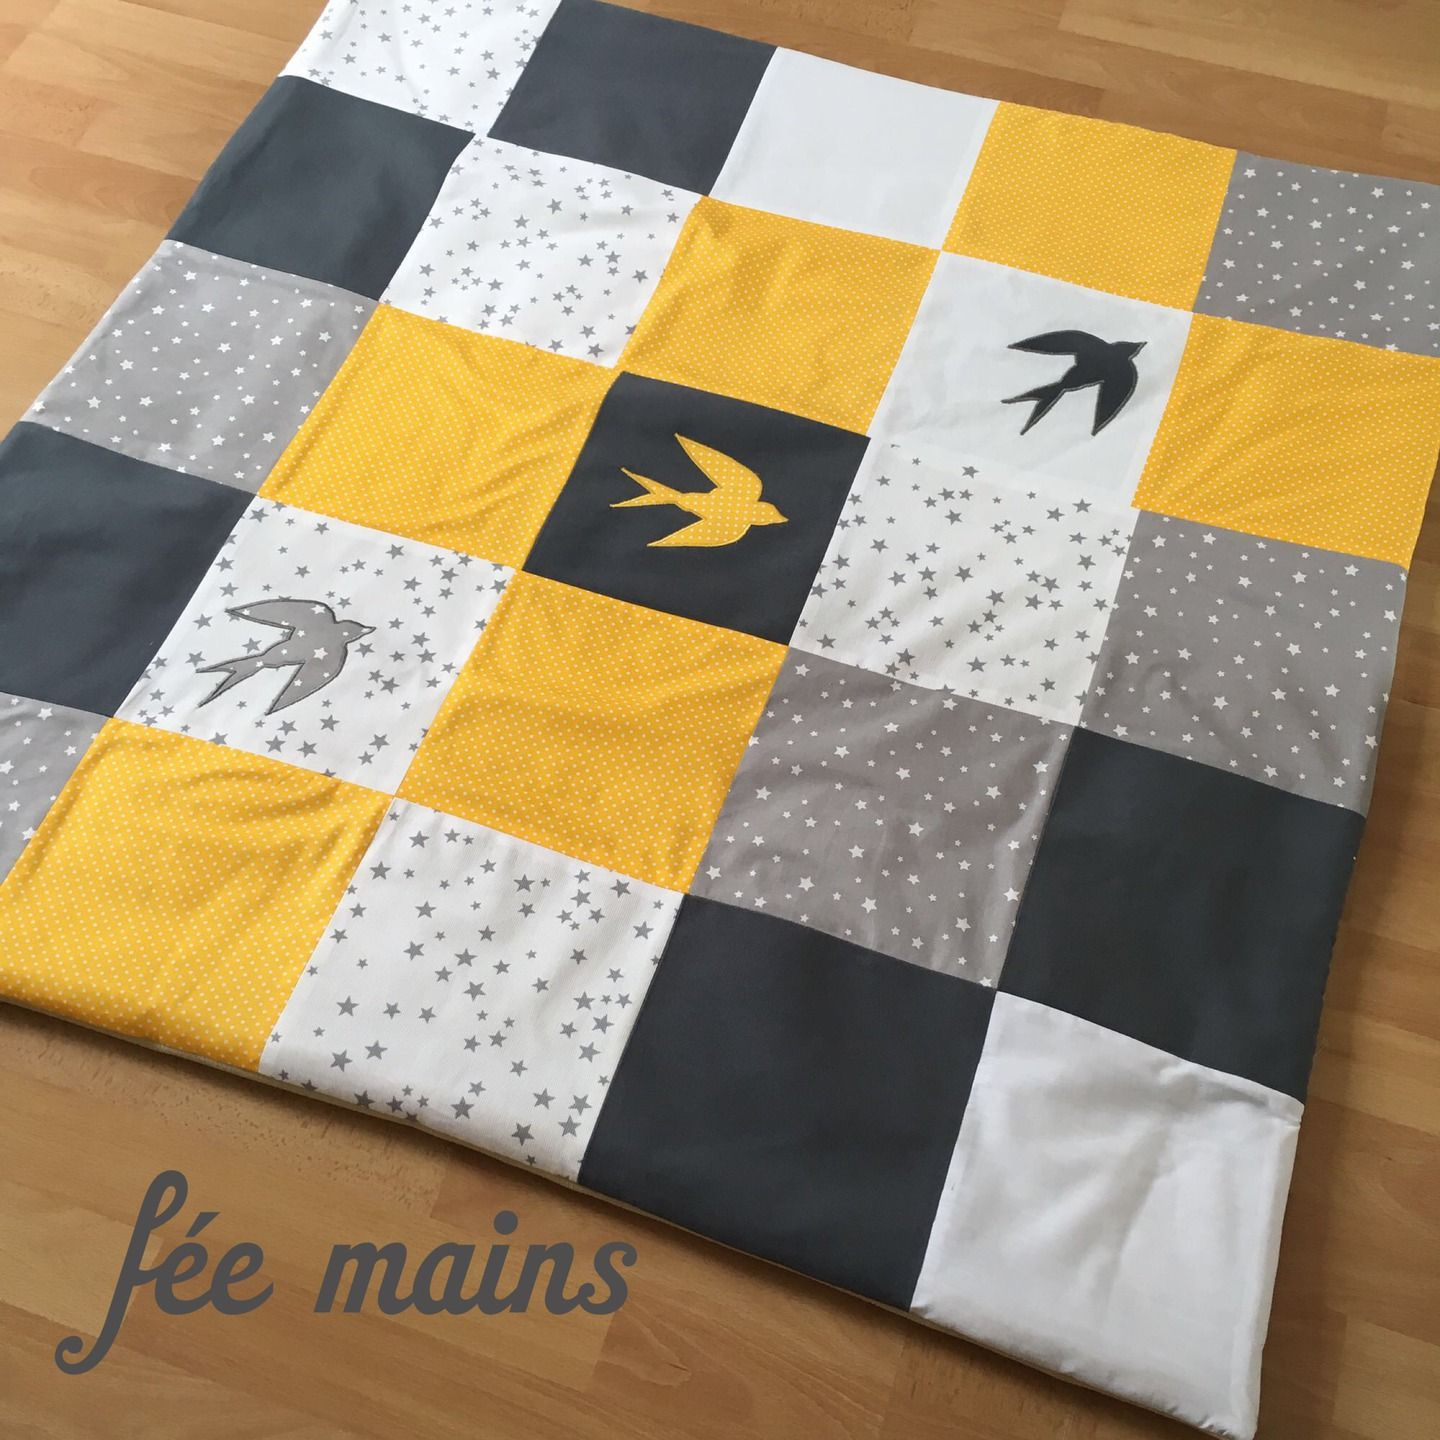 tapis de parc d 39 veil de jeu en patchwork jaune blanc gris avec hirondelle sur commande. Black Bedroom Furniture Sets. Home Design Ideas